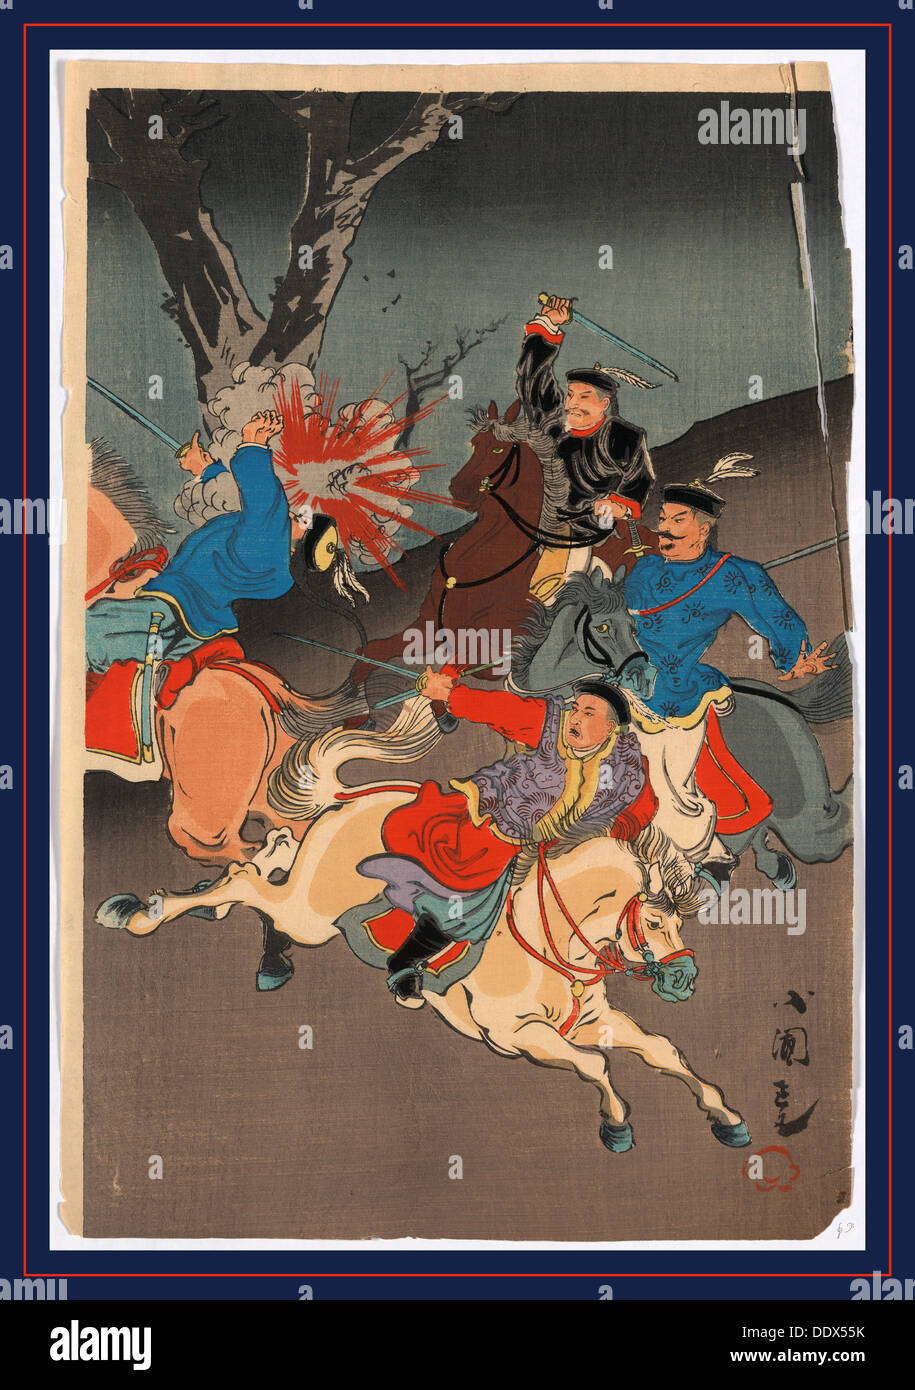 1894 Or 1895 1 Print Woodcut Color 368 X 246 Cm Shows A Cannon Shell